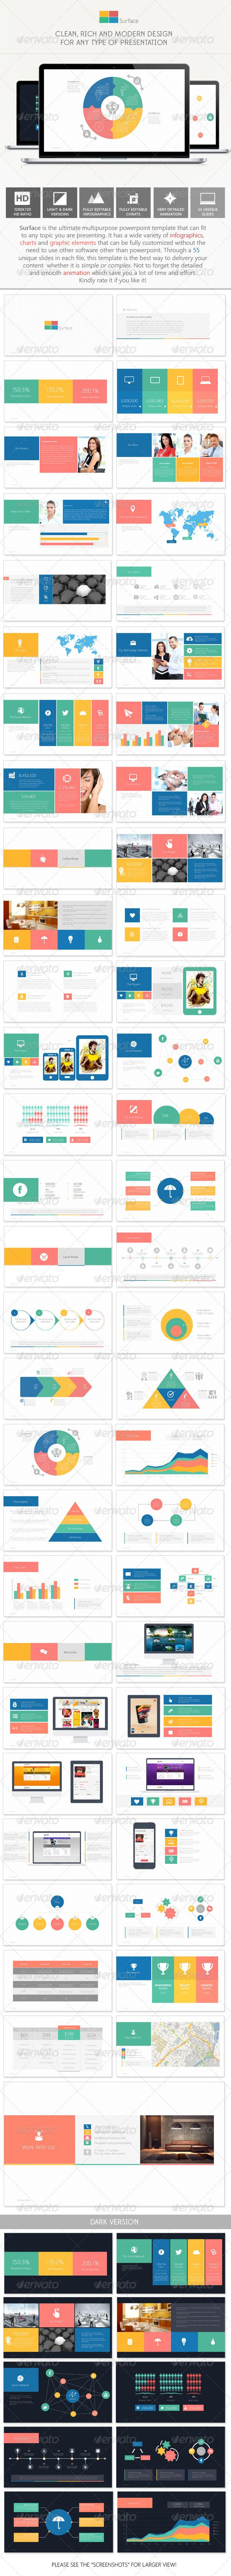 Surface Multipurpose PowerPoint Template (Powerpoint Templates) #Powerpoint #Powerpoint_Template #Presentation